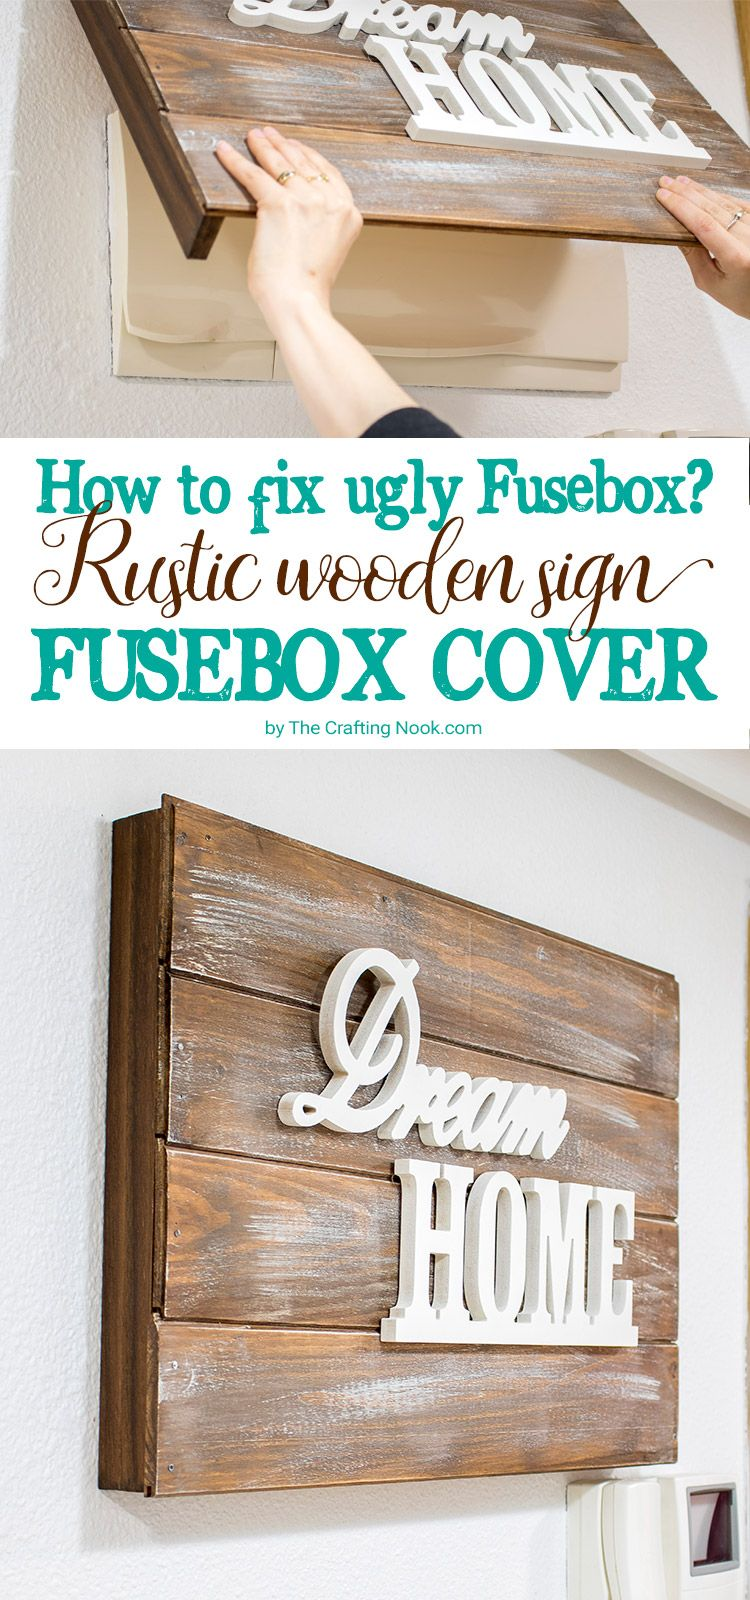 This Rustic Wooden Sign Fusebox Cover is pretty, is easy to make and will  fix